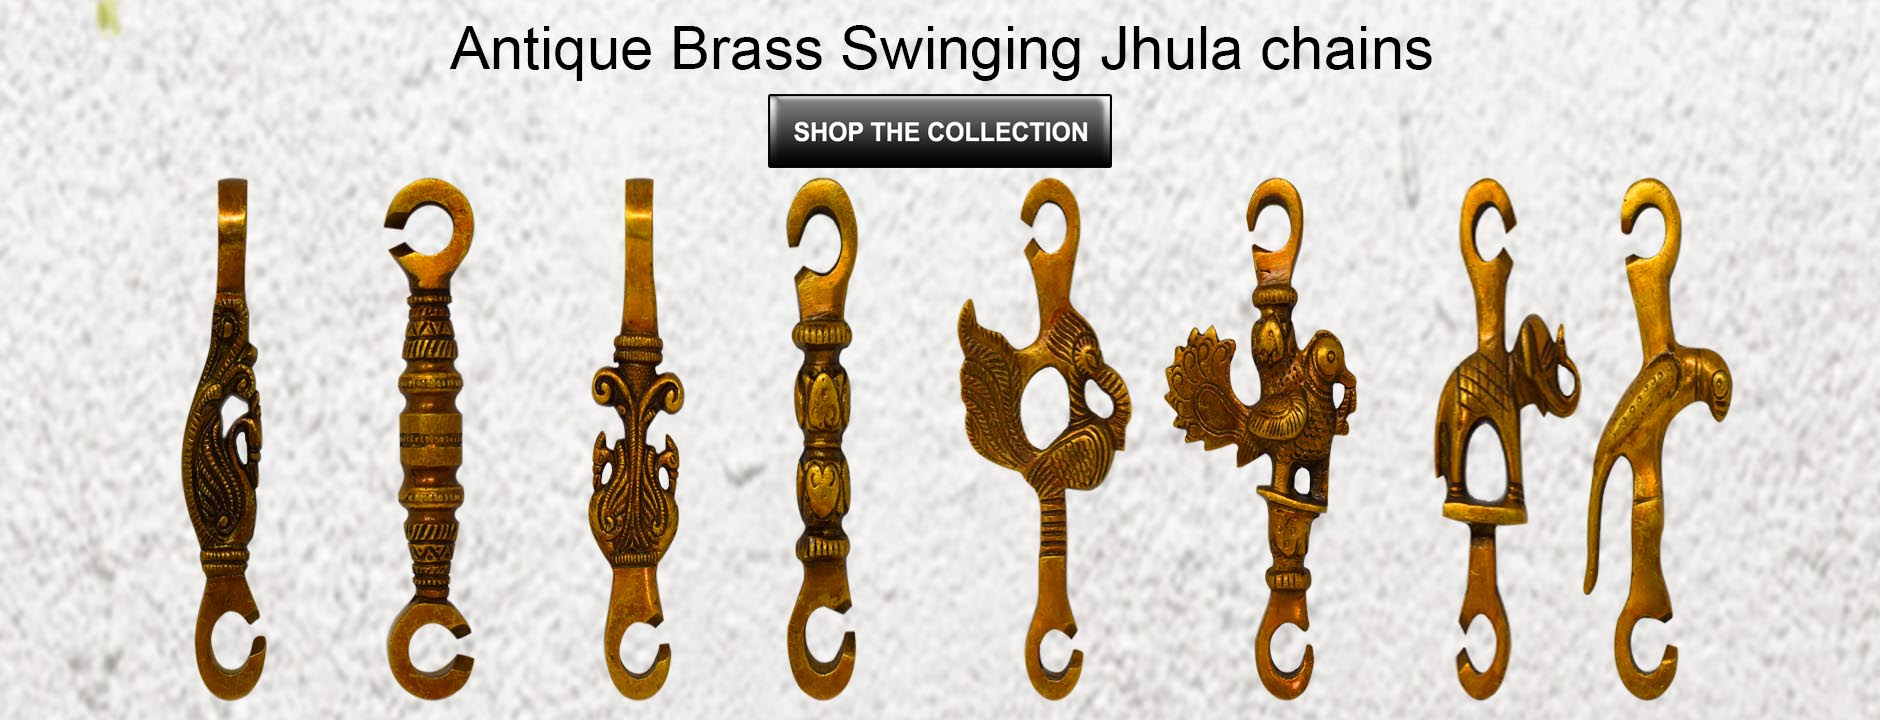 Buy Online Brass Swing Chains from Ashtok. Pure brass jhula chains for Jhula. Best Price online swing chains at reasonable price